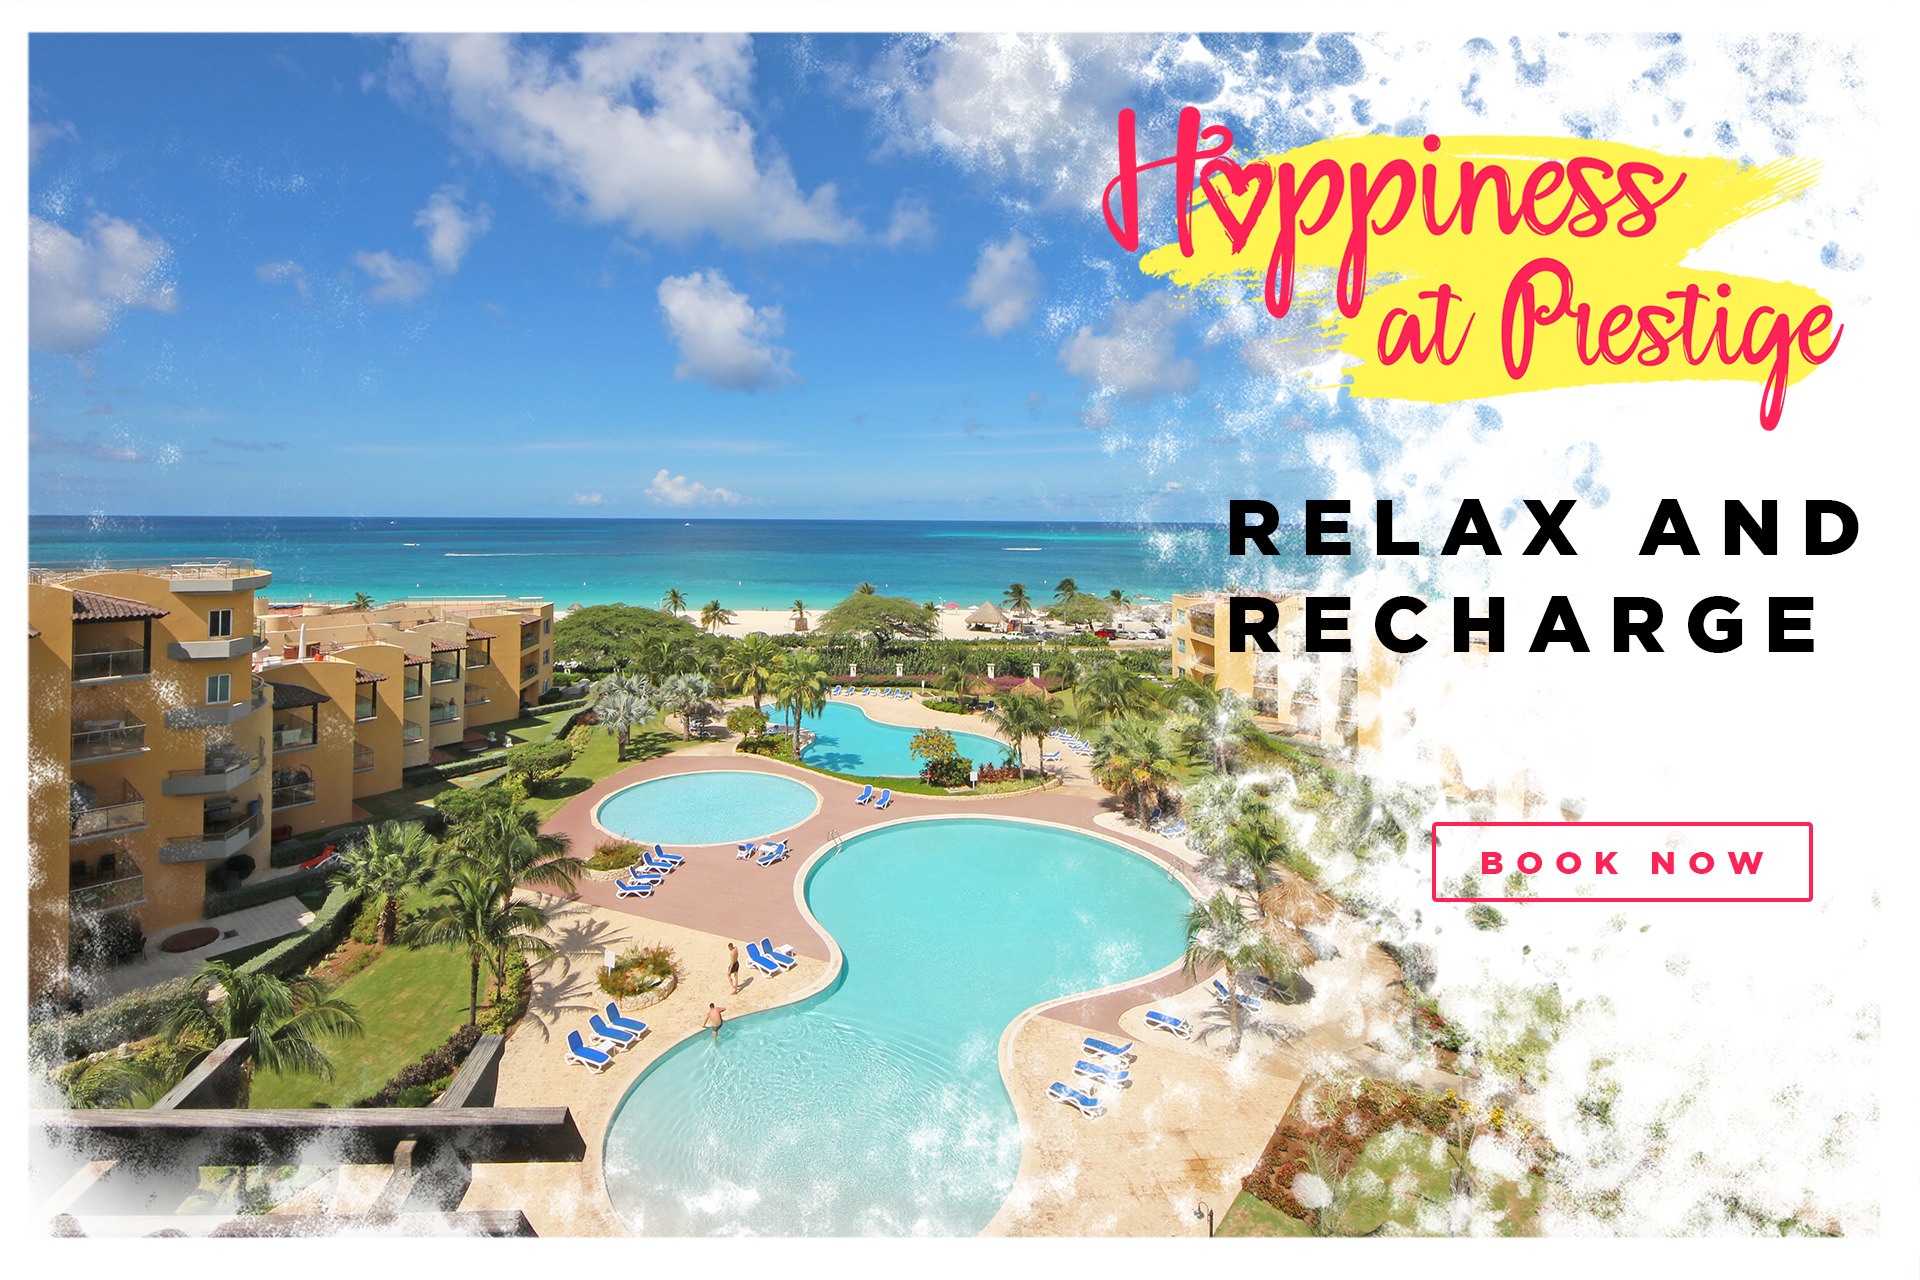 Prestige-Vacations-Aruba-Happines-at-Prestige-Relax-and-Recharge-1920x1280